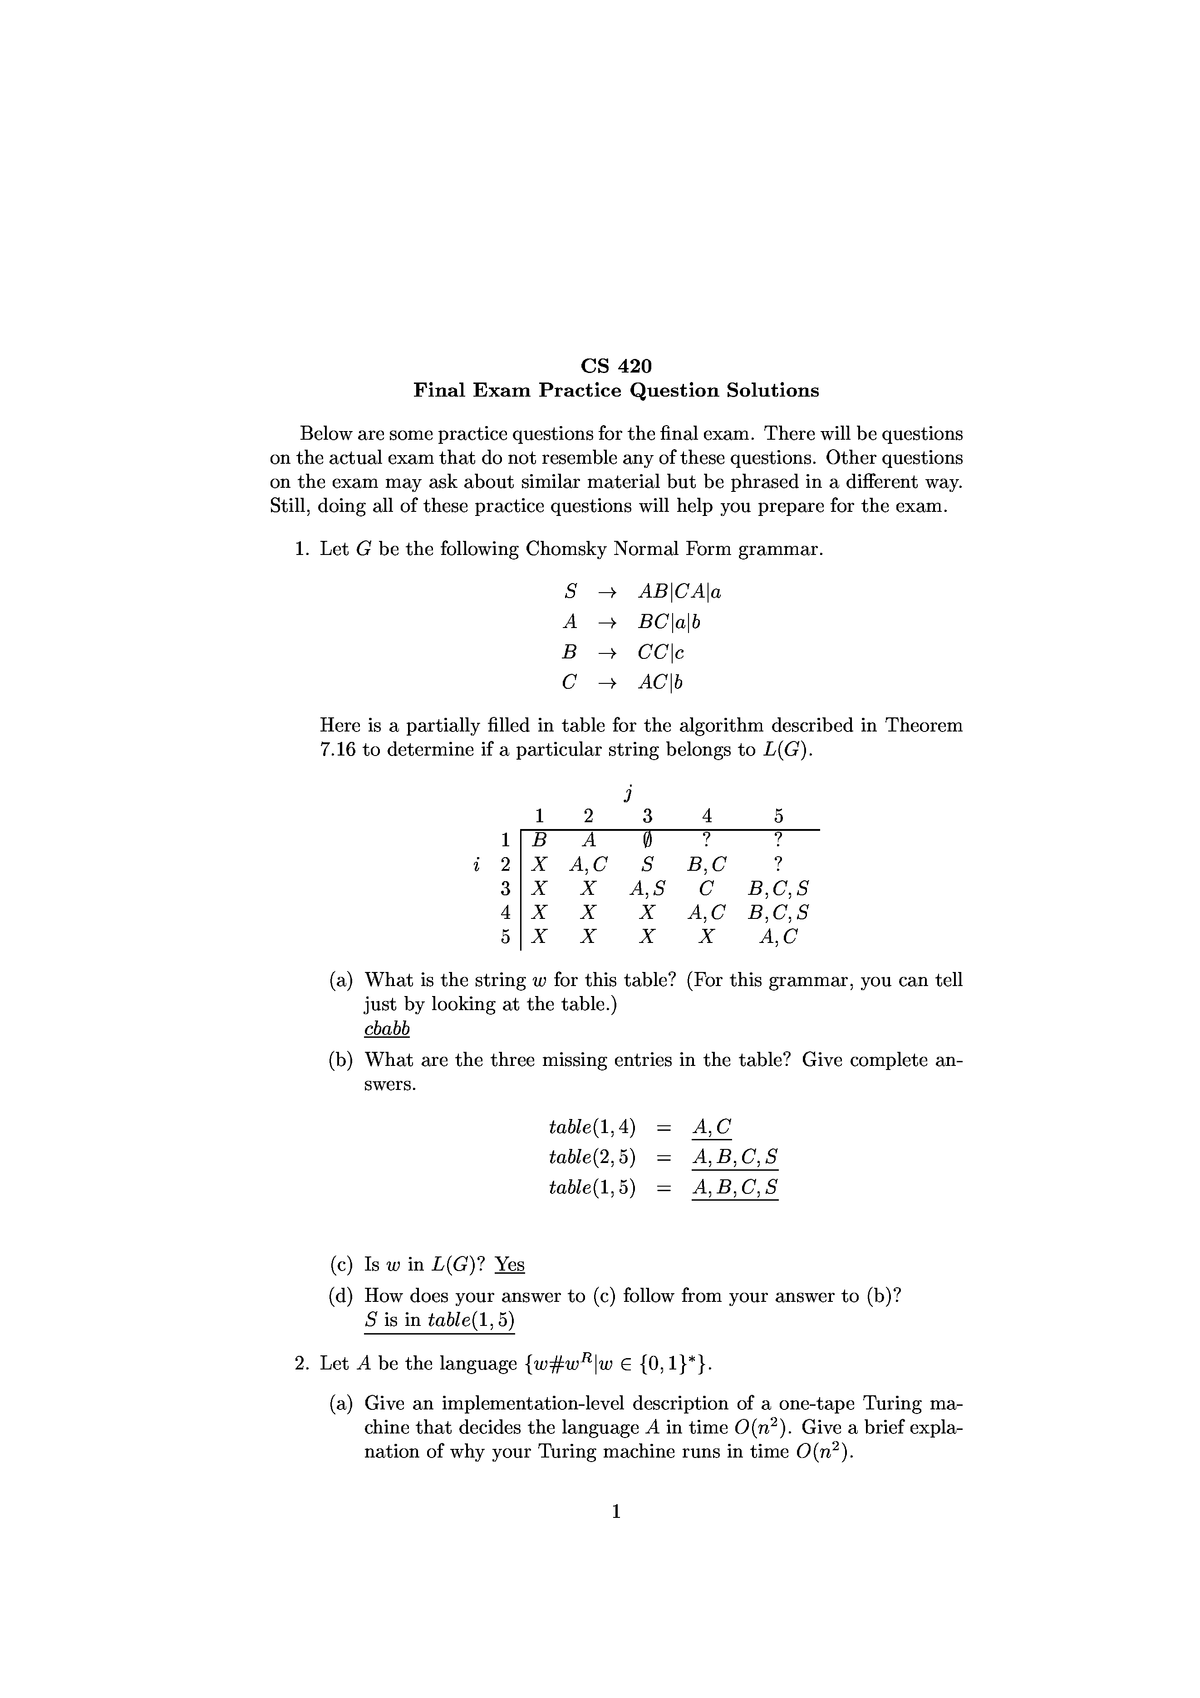 Exam 2018 - CS420: An Introduction to the Theory of Computation